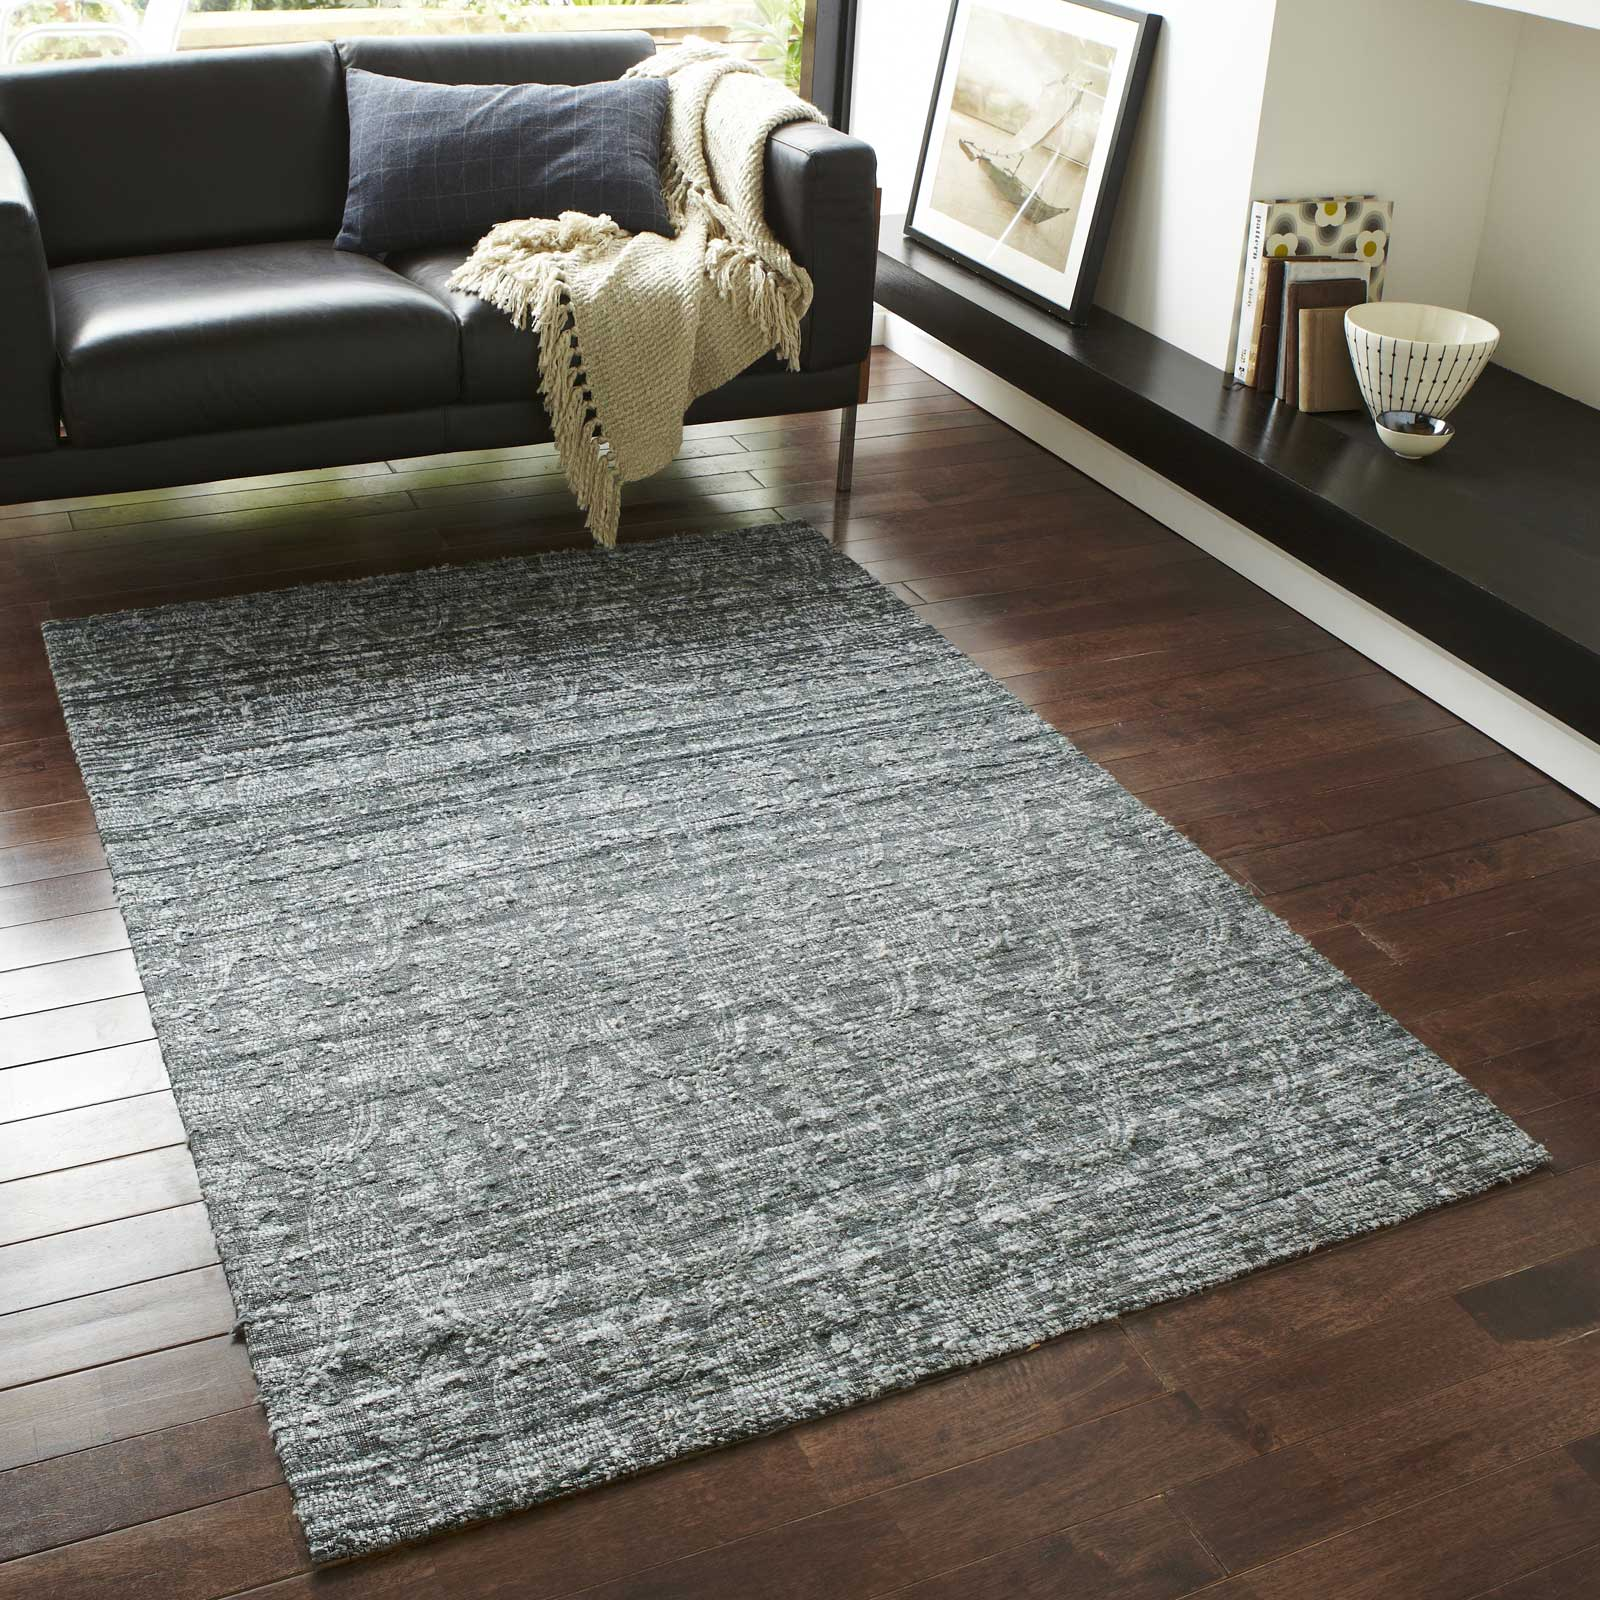 Satin Rugs ST10 Hand Made Indian Silk in Grey